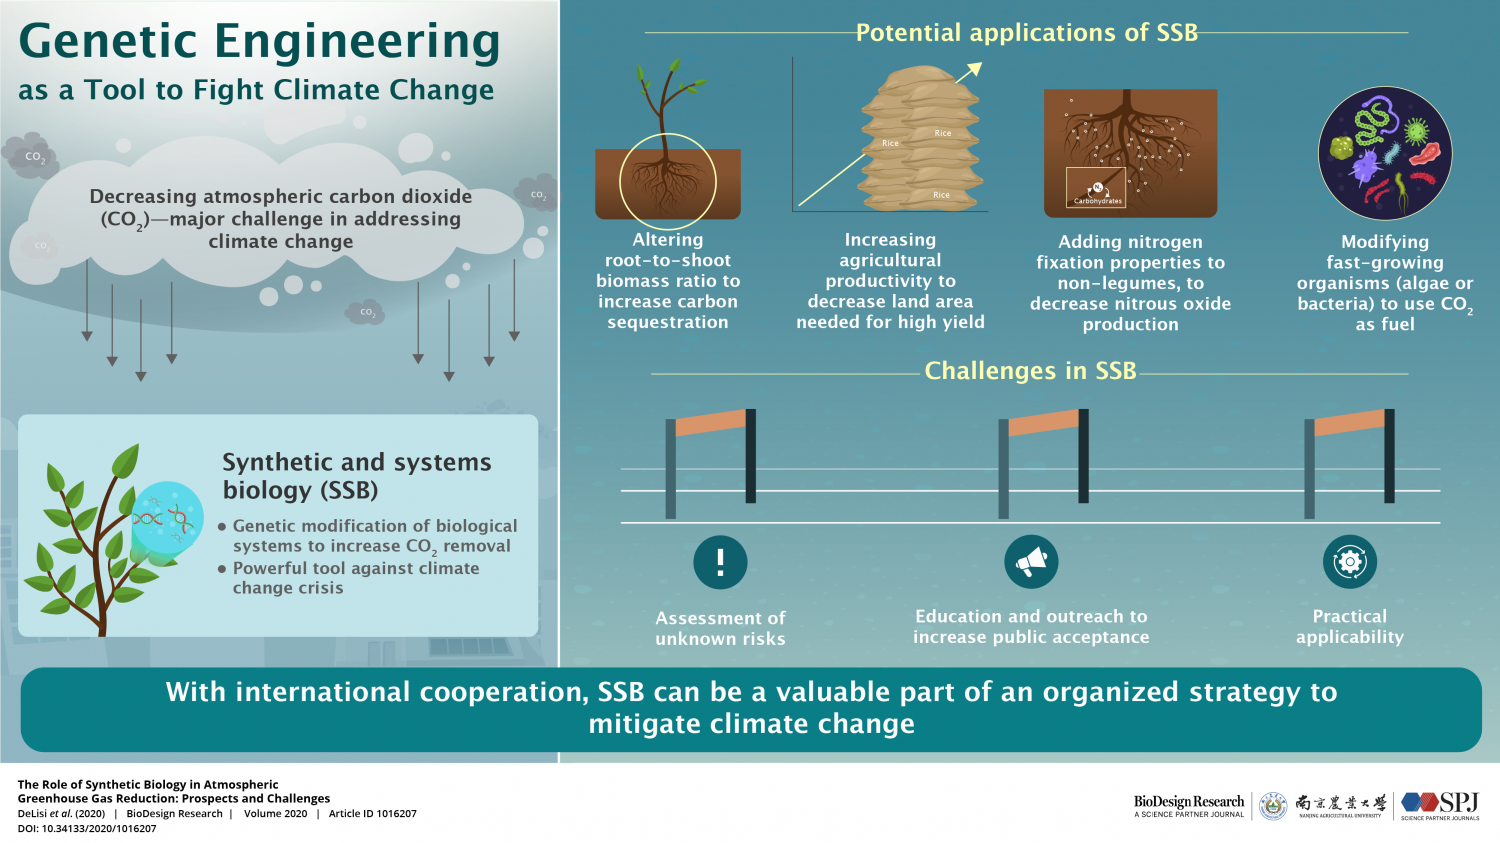 Genetic Engineering as a Tool in Fighting Climate Change